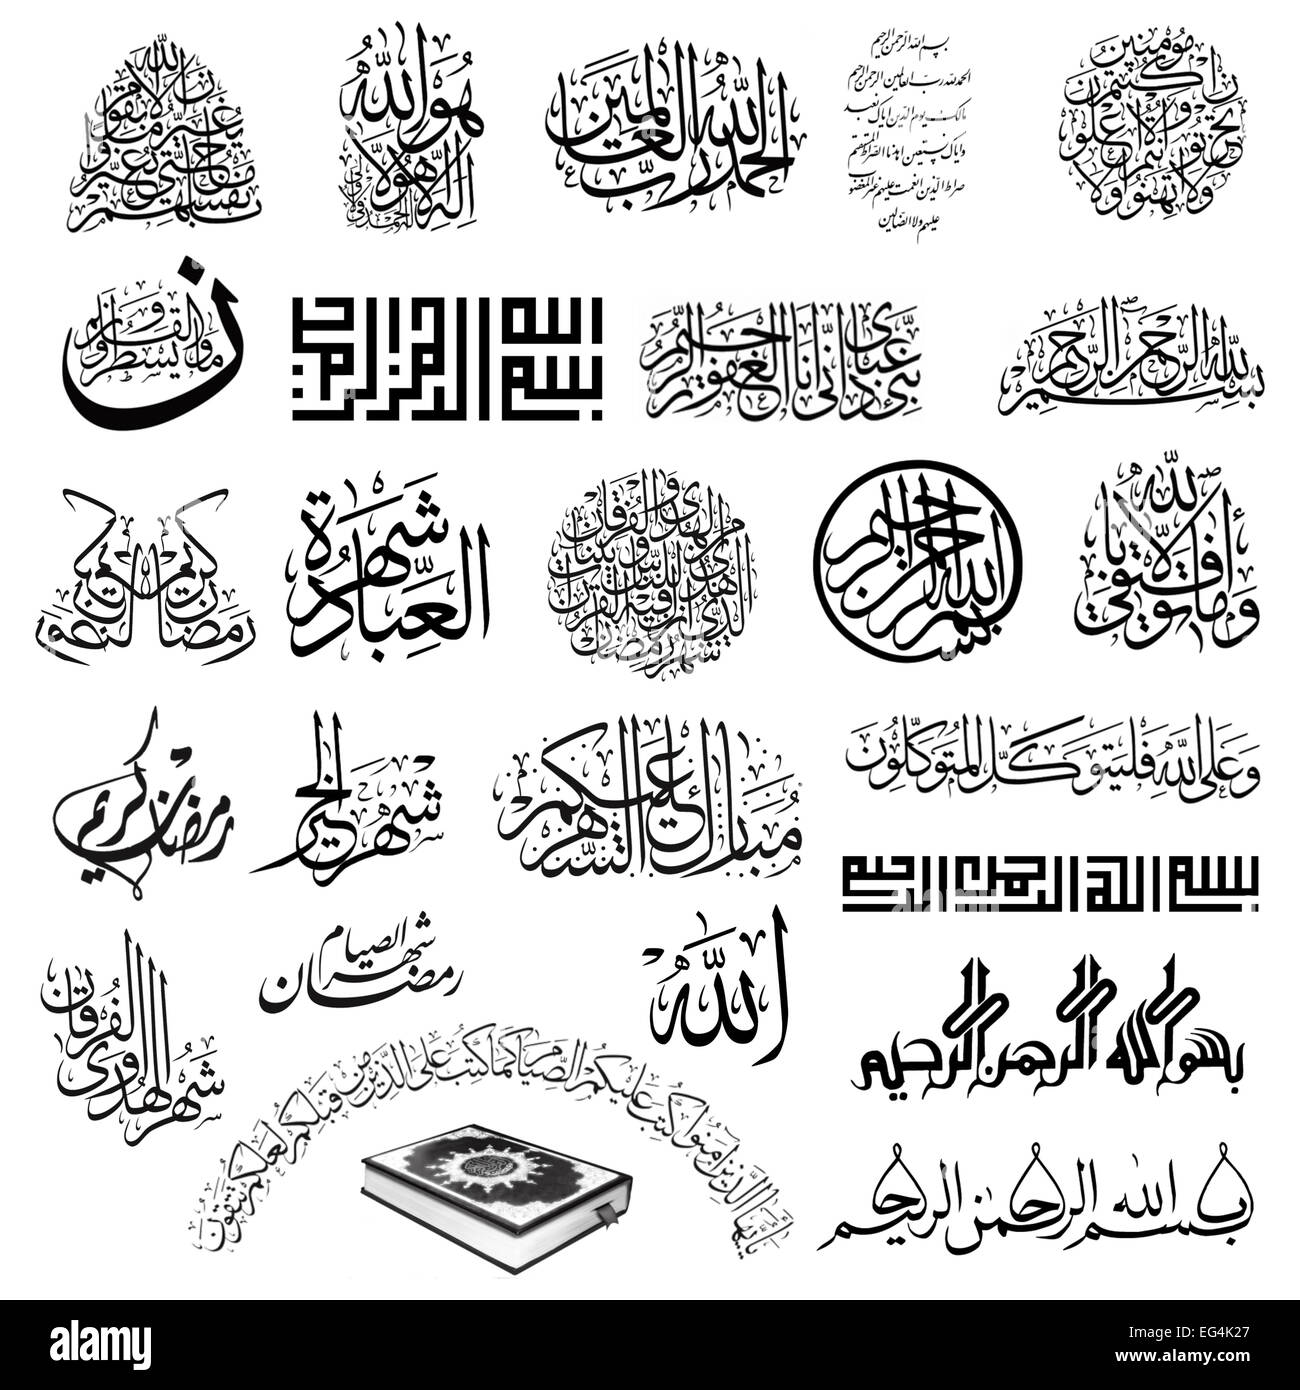 Arabic Calligraphy Set - Stock Image